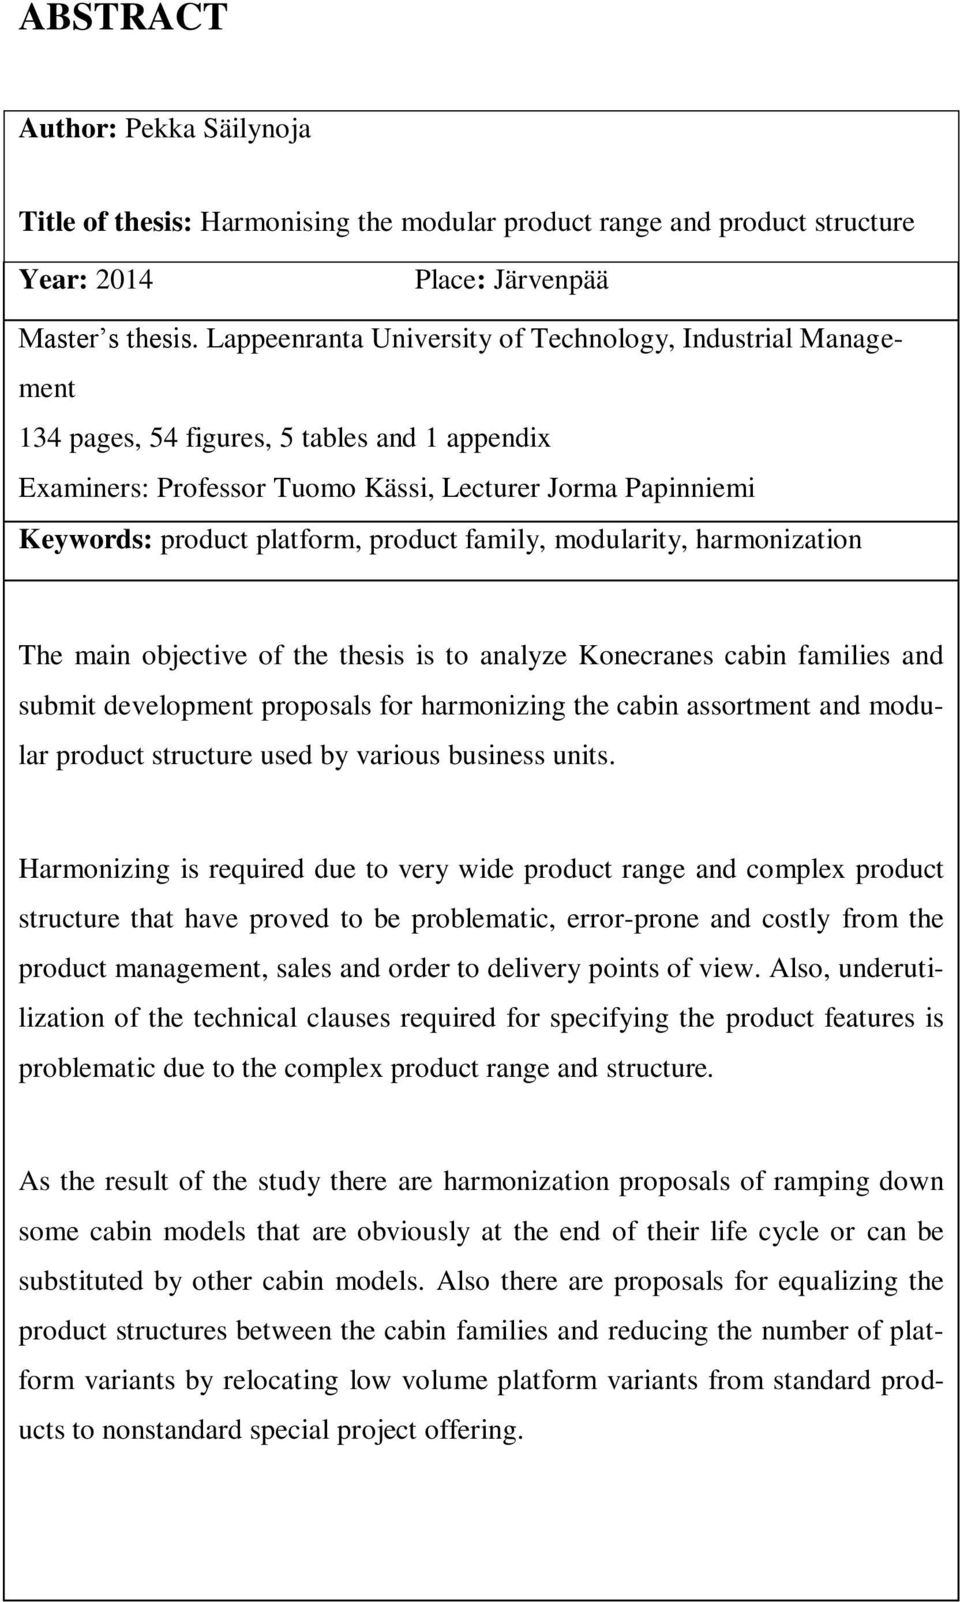 product family, modularity, harmonization The main objective of the thesis is to analyze Konecranes cabin families and submit development proposals for harmonizing the cabin assortment and modular